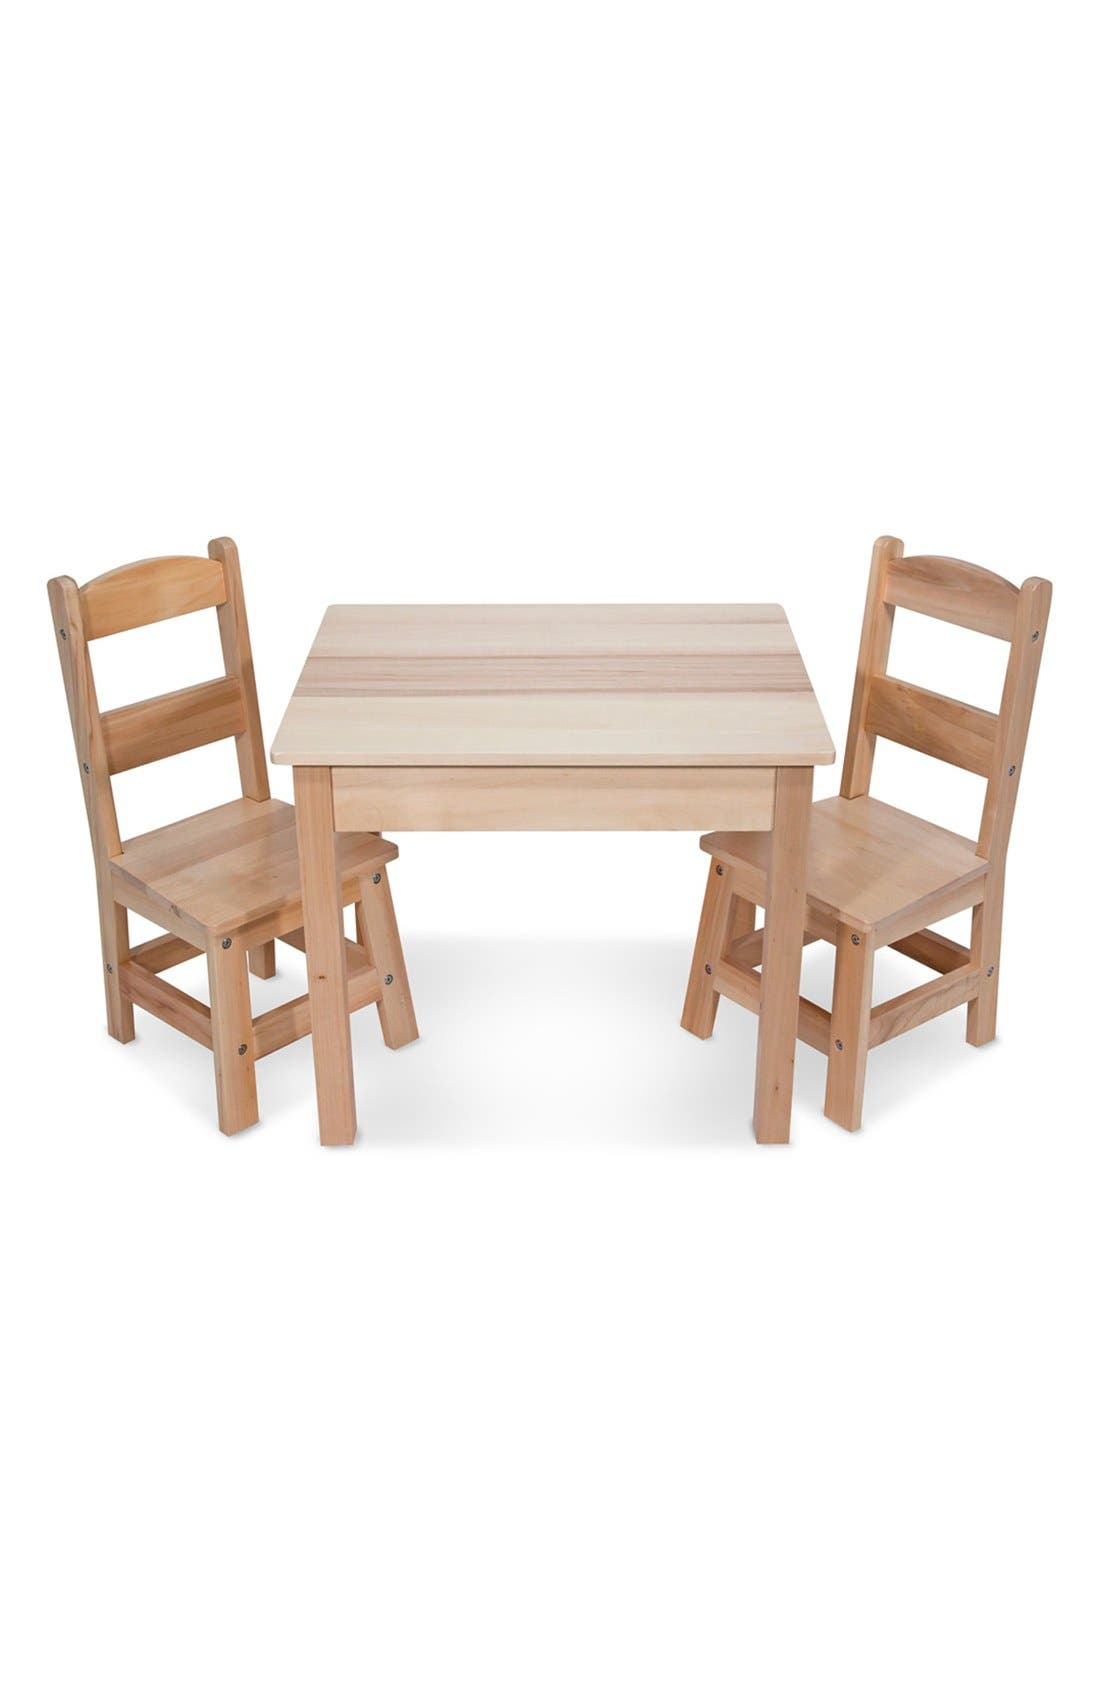 Wooden Table and Chairs Set,                             Main thumbnail 1, color,                             200